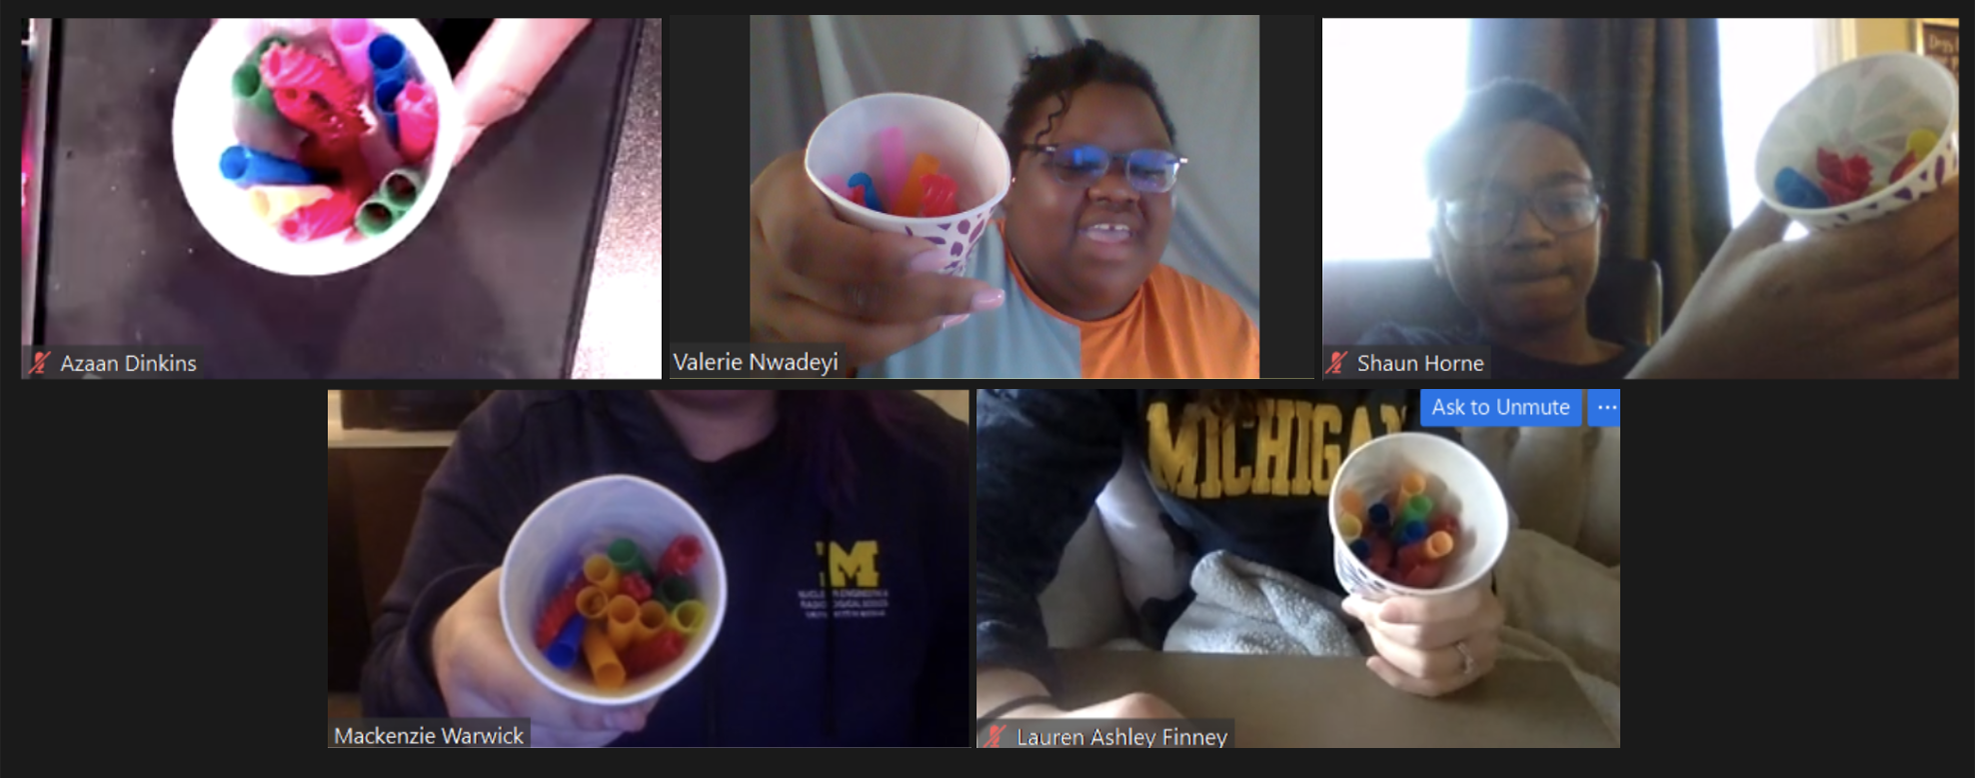 Zoom screenshot of students displaying their candy nuclear reactors